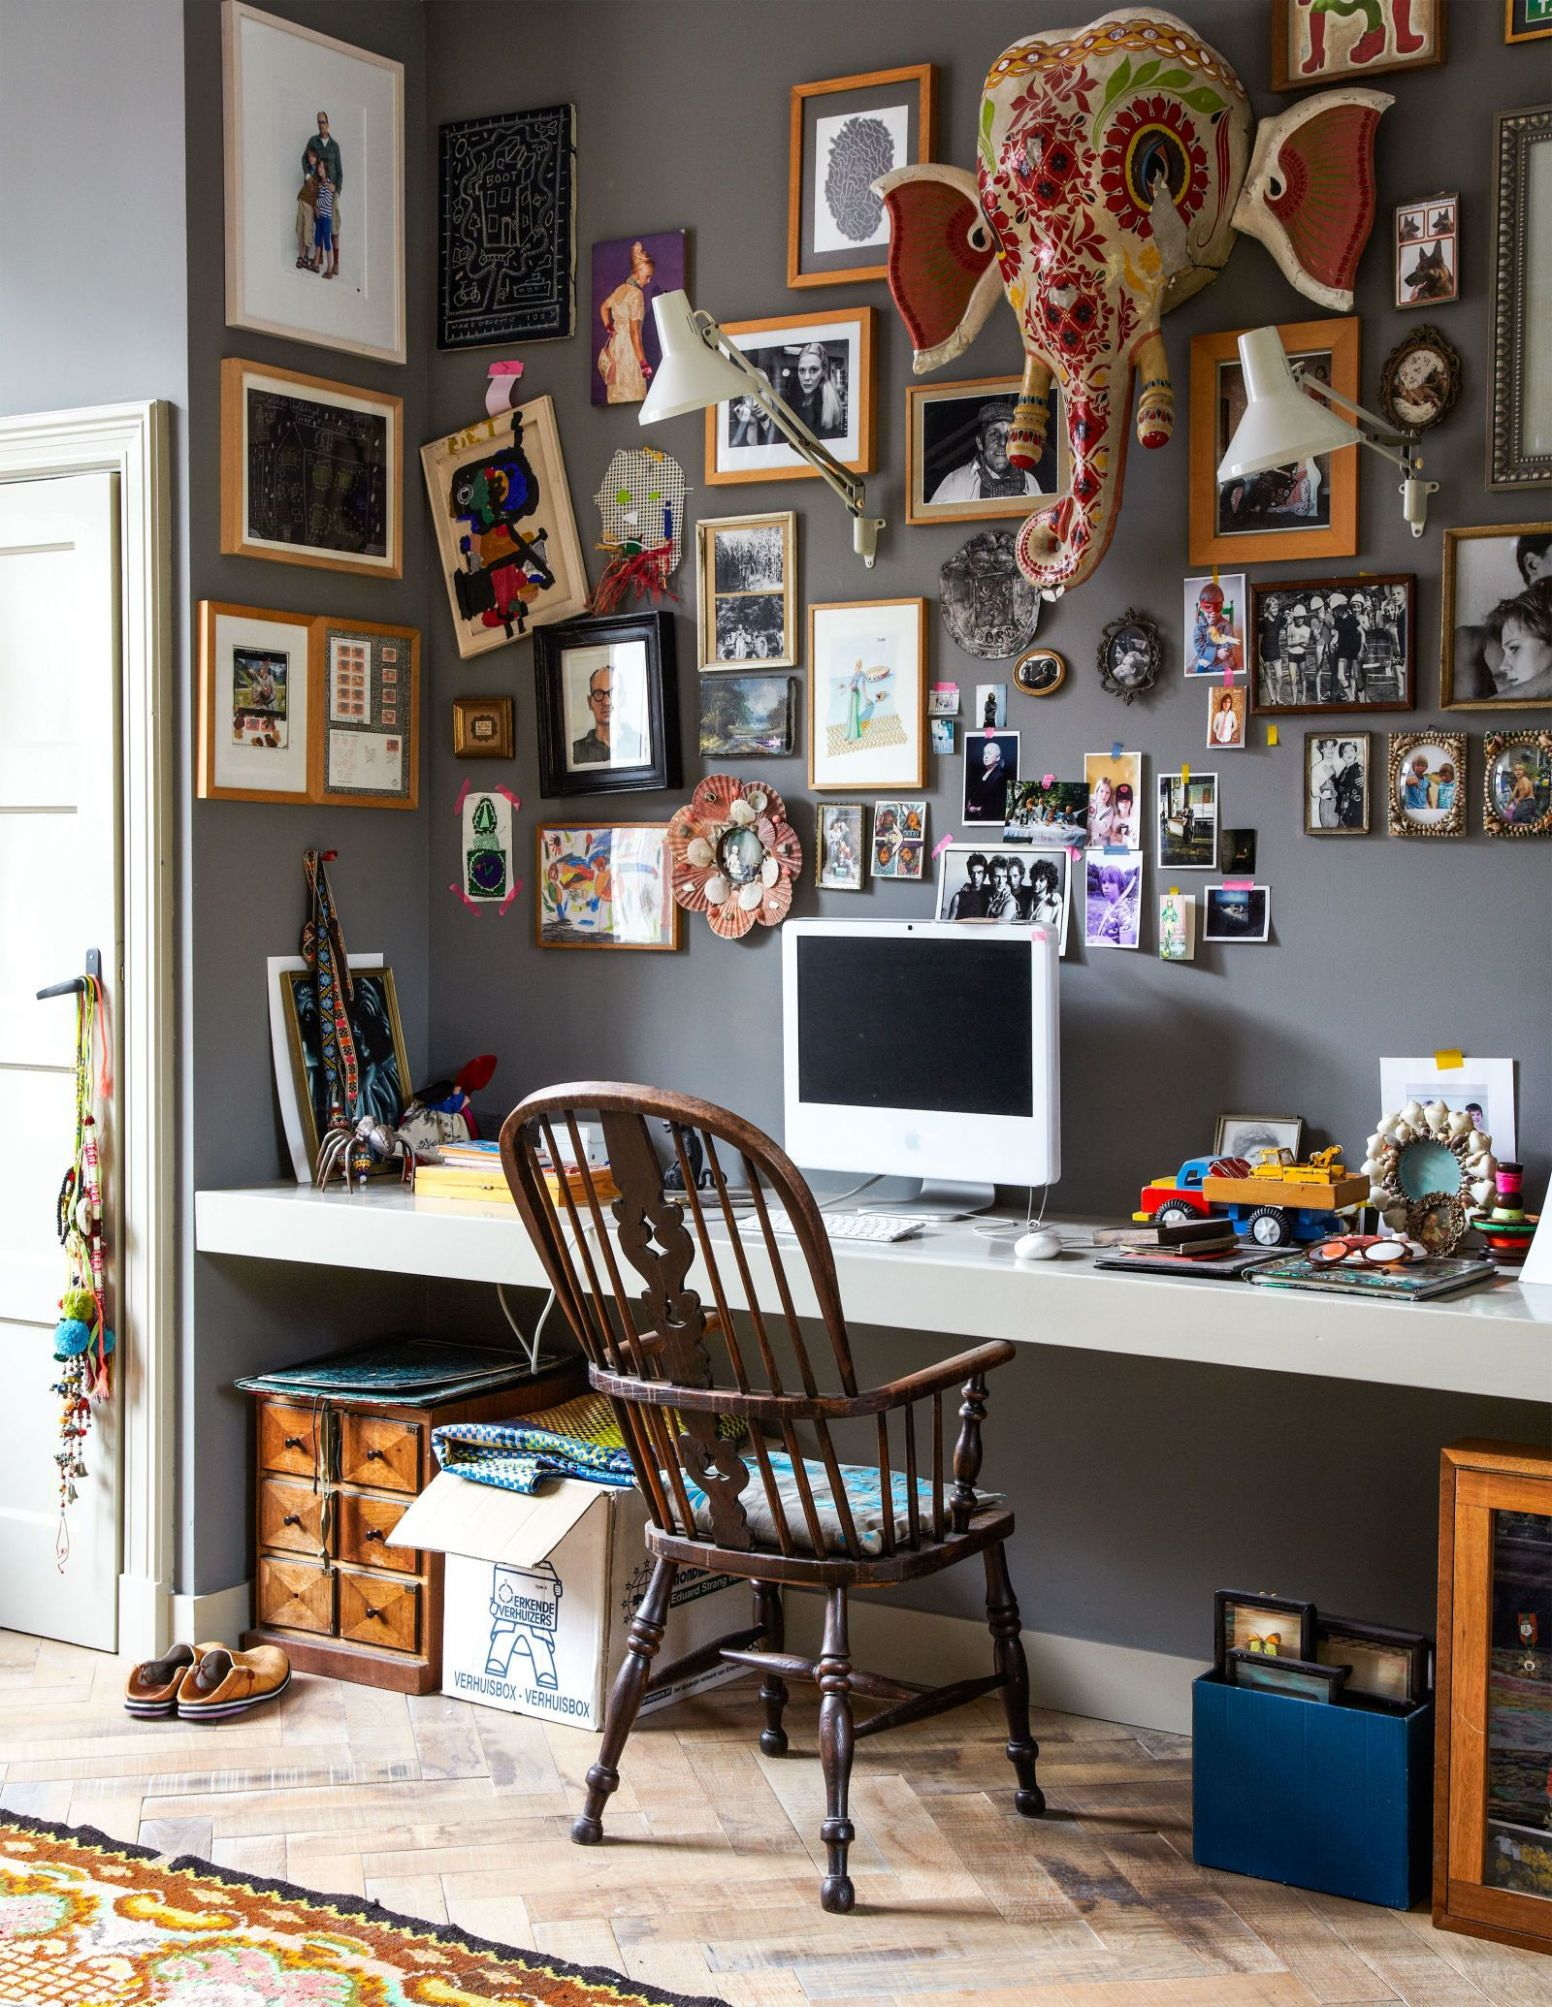 10 Creative Ways to Make Your Clutter Look *Good* | Workspaces ..